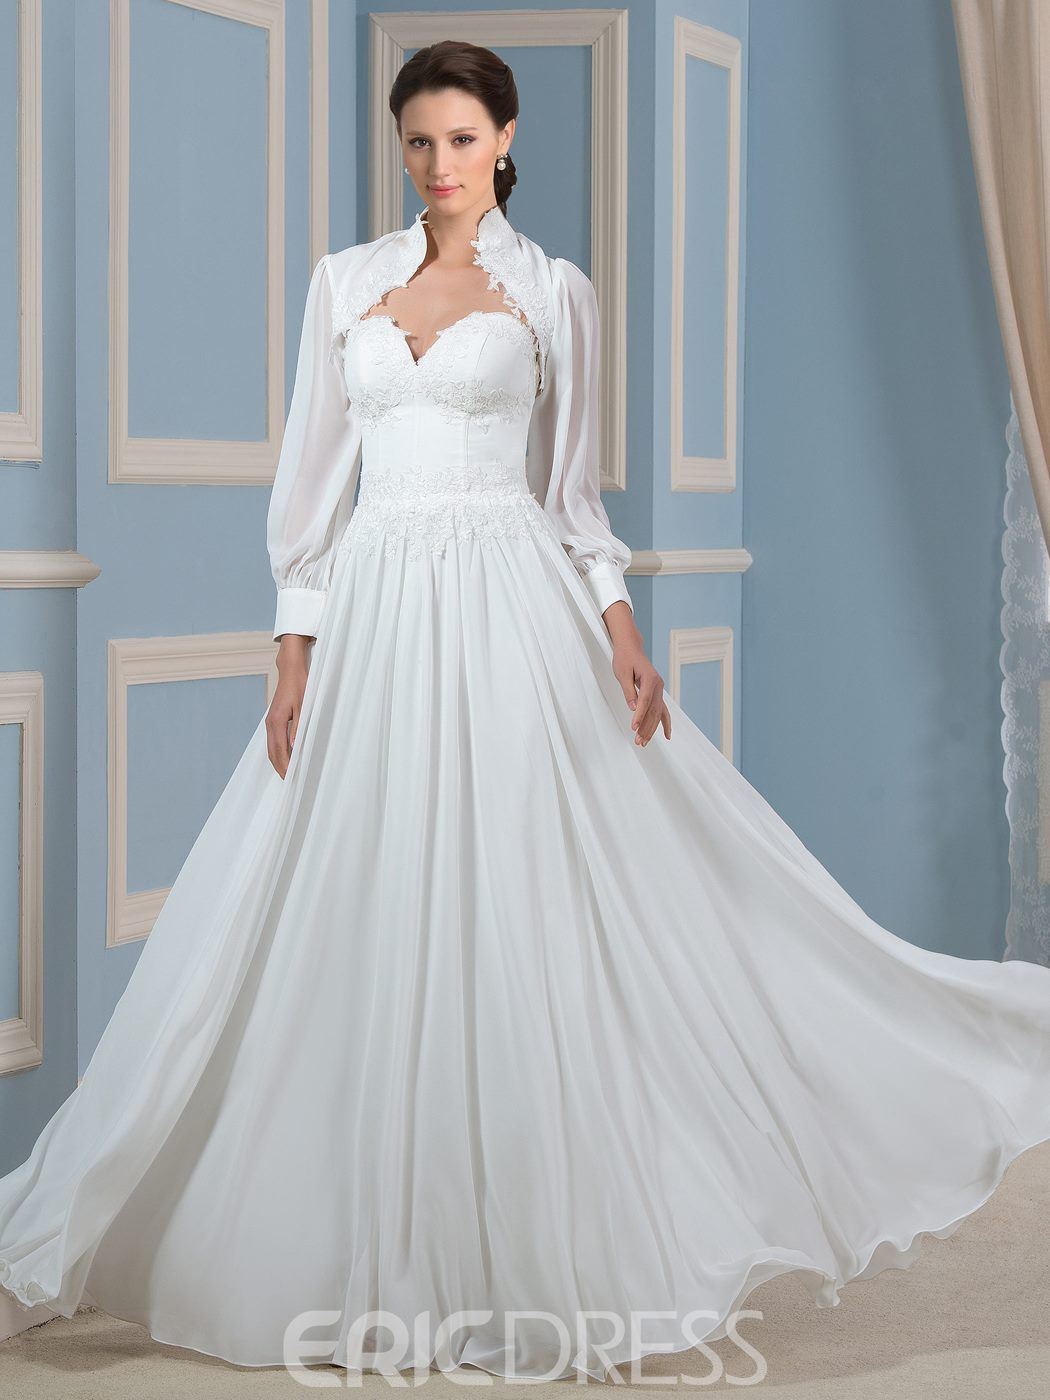 Ericdress Fashionable Sweetheart A Line Chiffon Wedding Dress